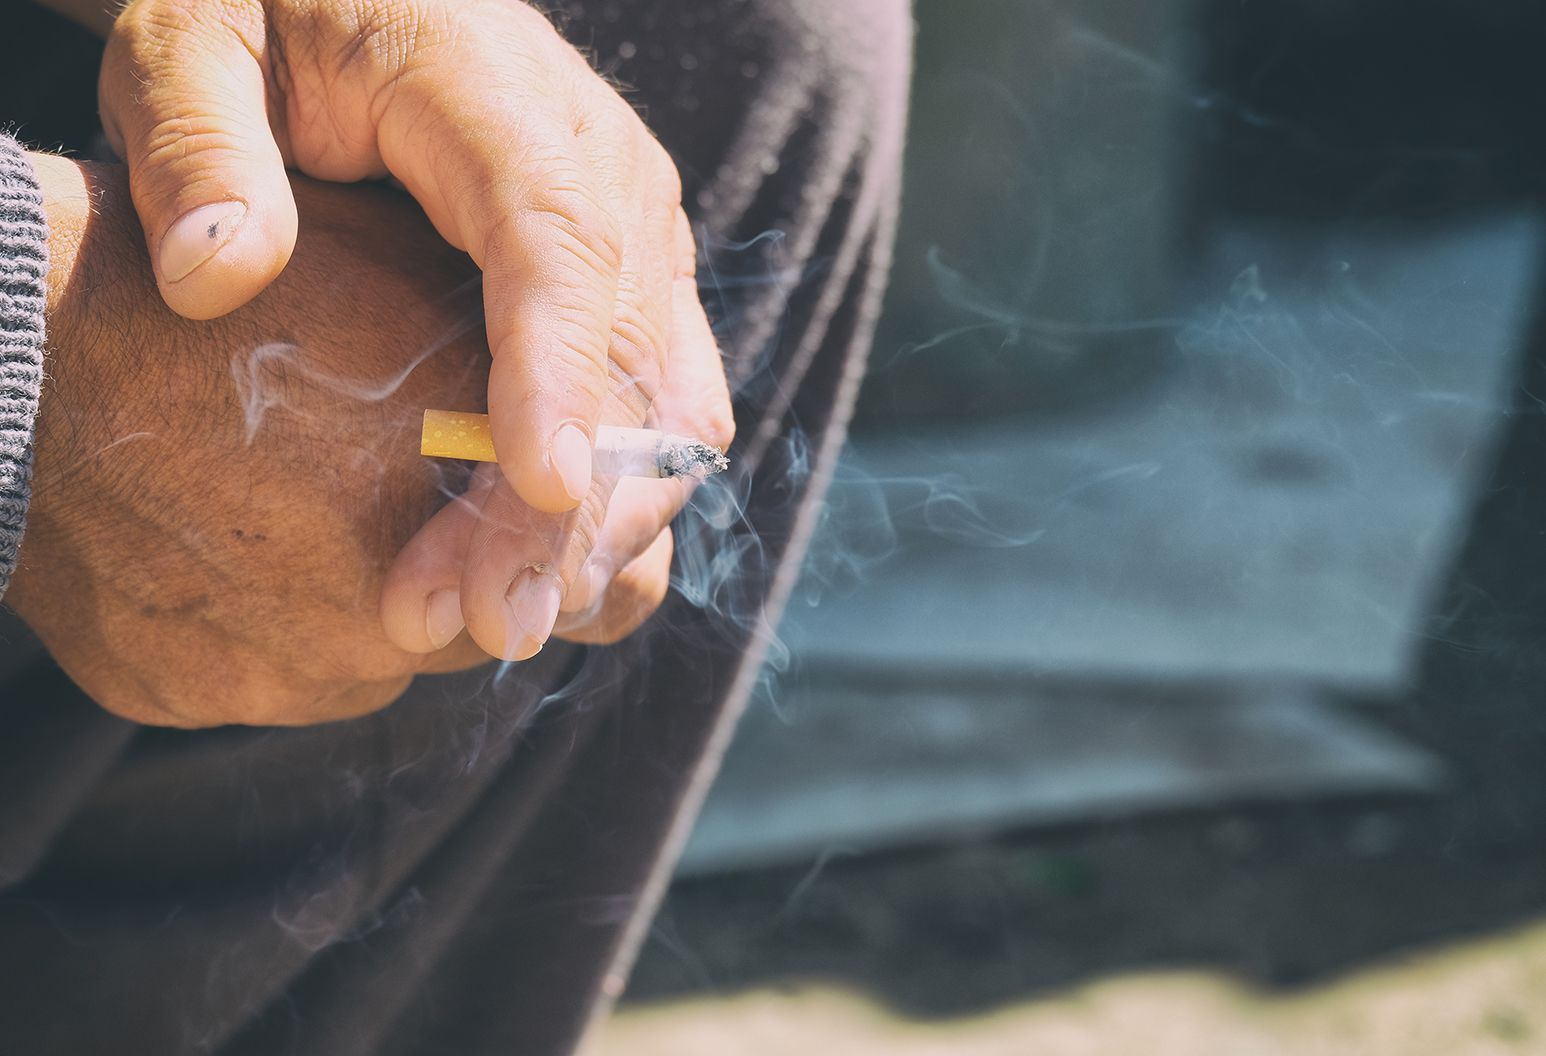 In the upper left hand corner of the photo, we see the hands of an older man. They are folded over each other and in between two fingers is an almost finished cigarette. The smoke from the cigarette curls upwards.